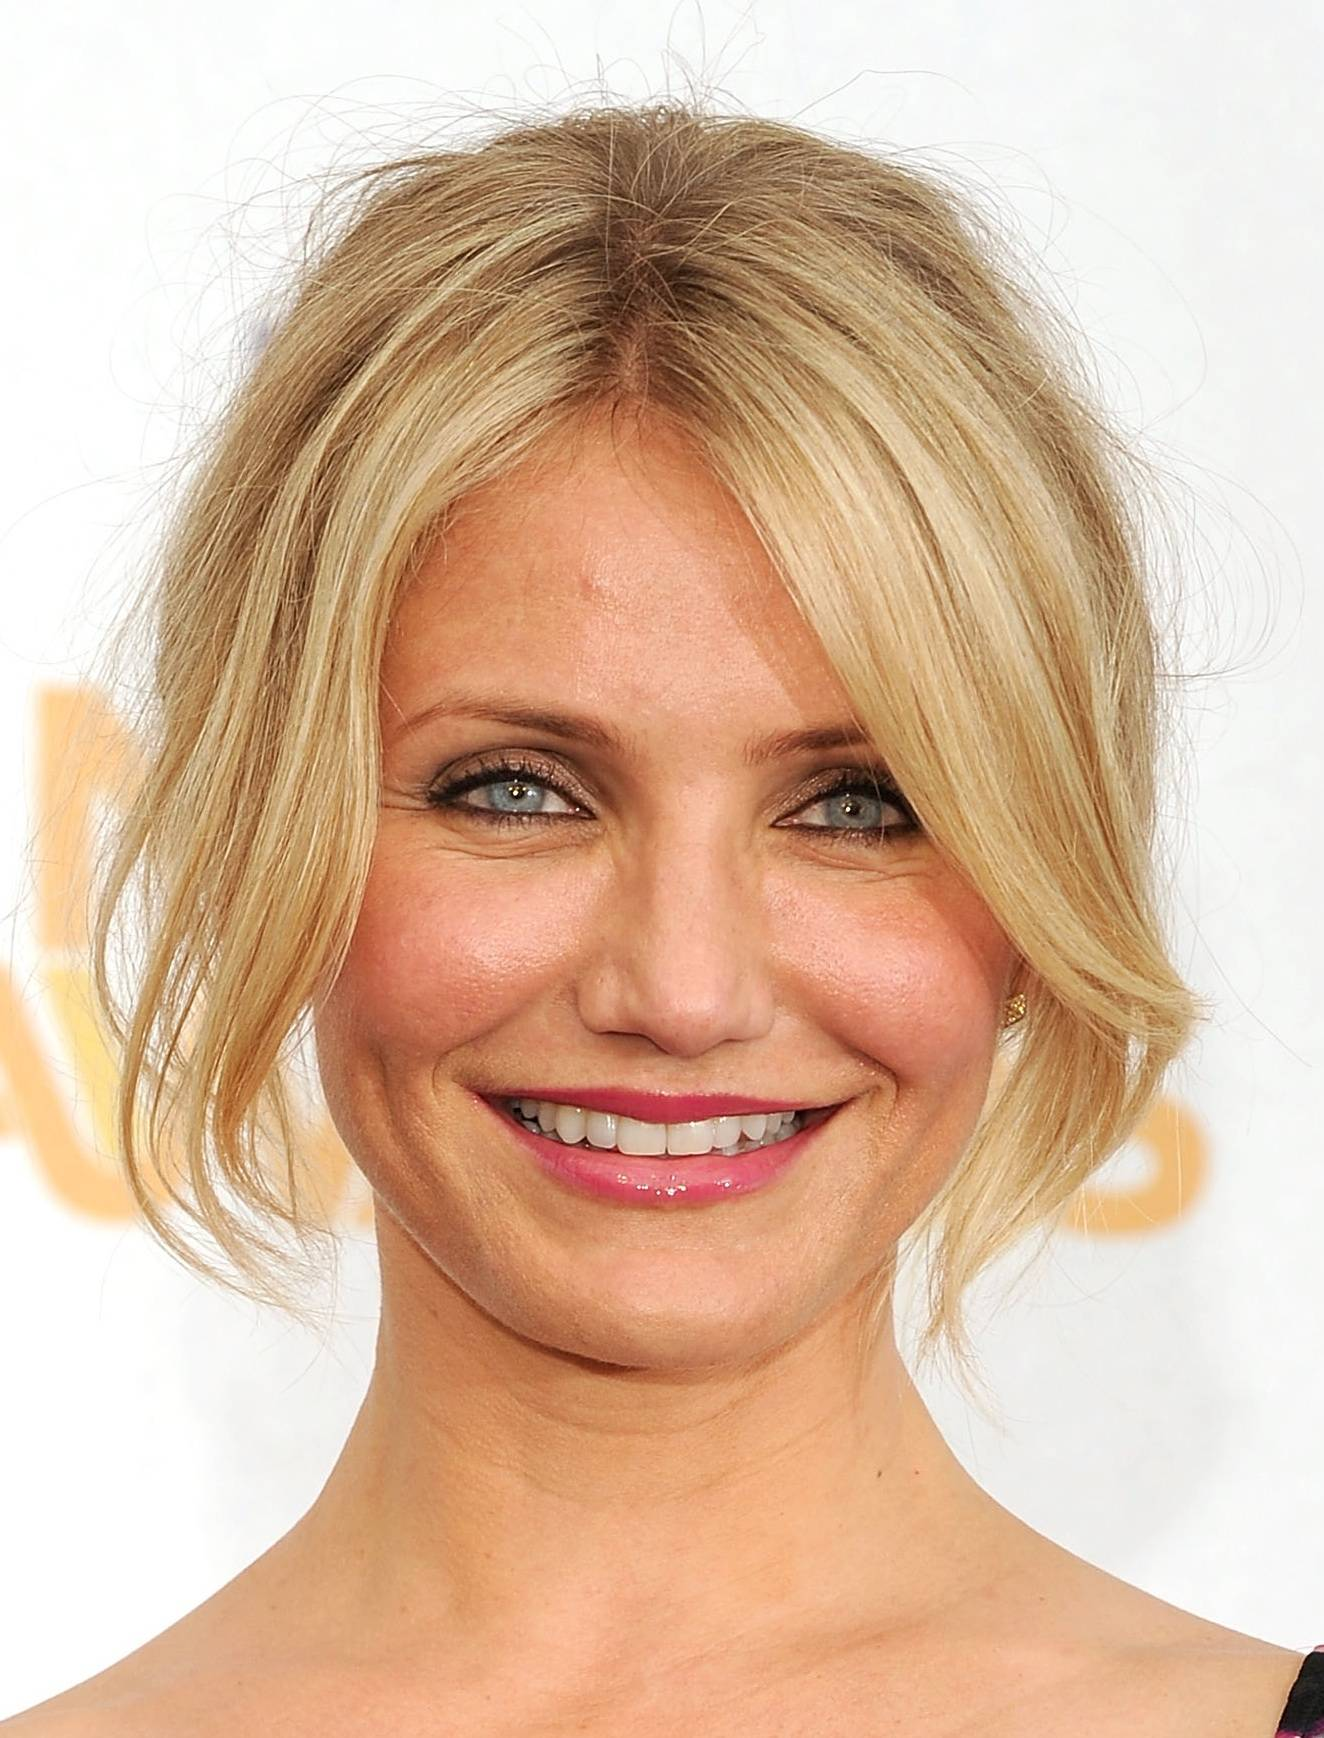 Cameron Diaz Tells Us: Women Want to Be Objectified ...Cameron Diaz